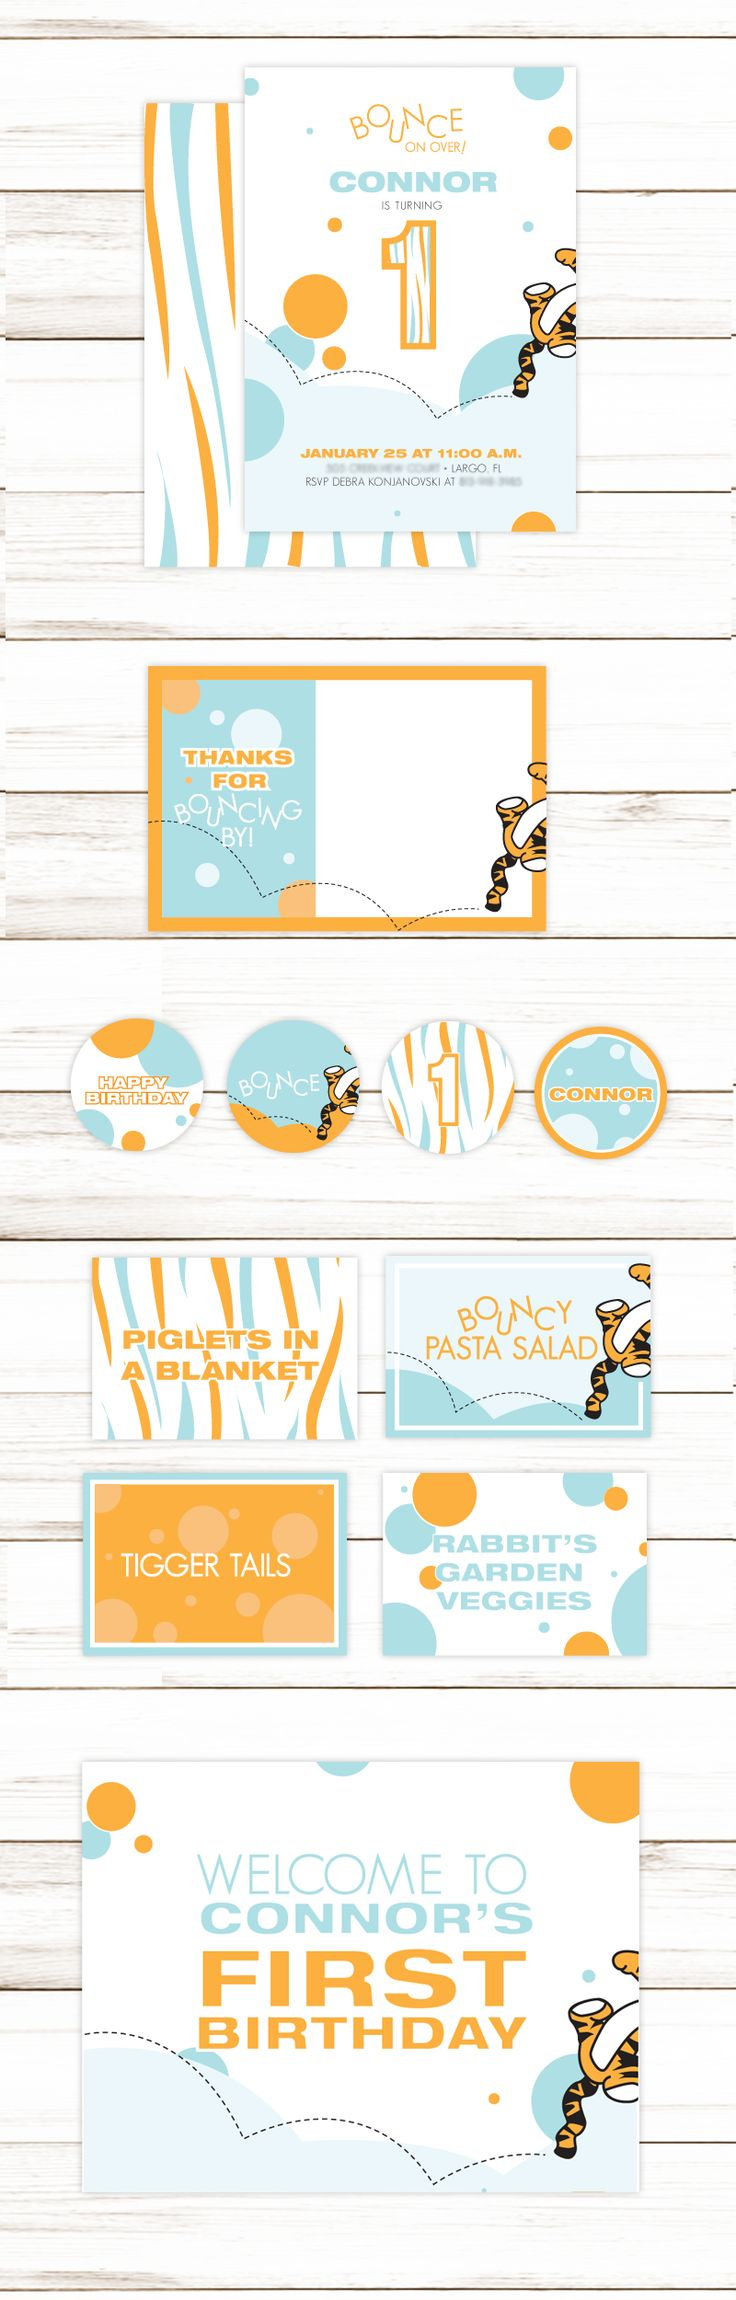 best images about birthday party invitations and party supplies blue and orange tigger bounce on over tiger stripes first birthday custom